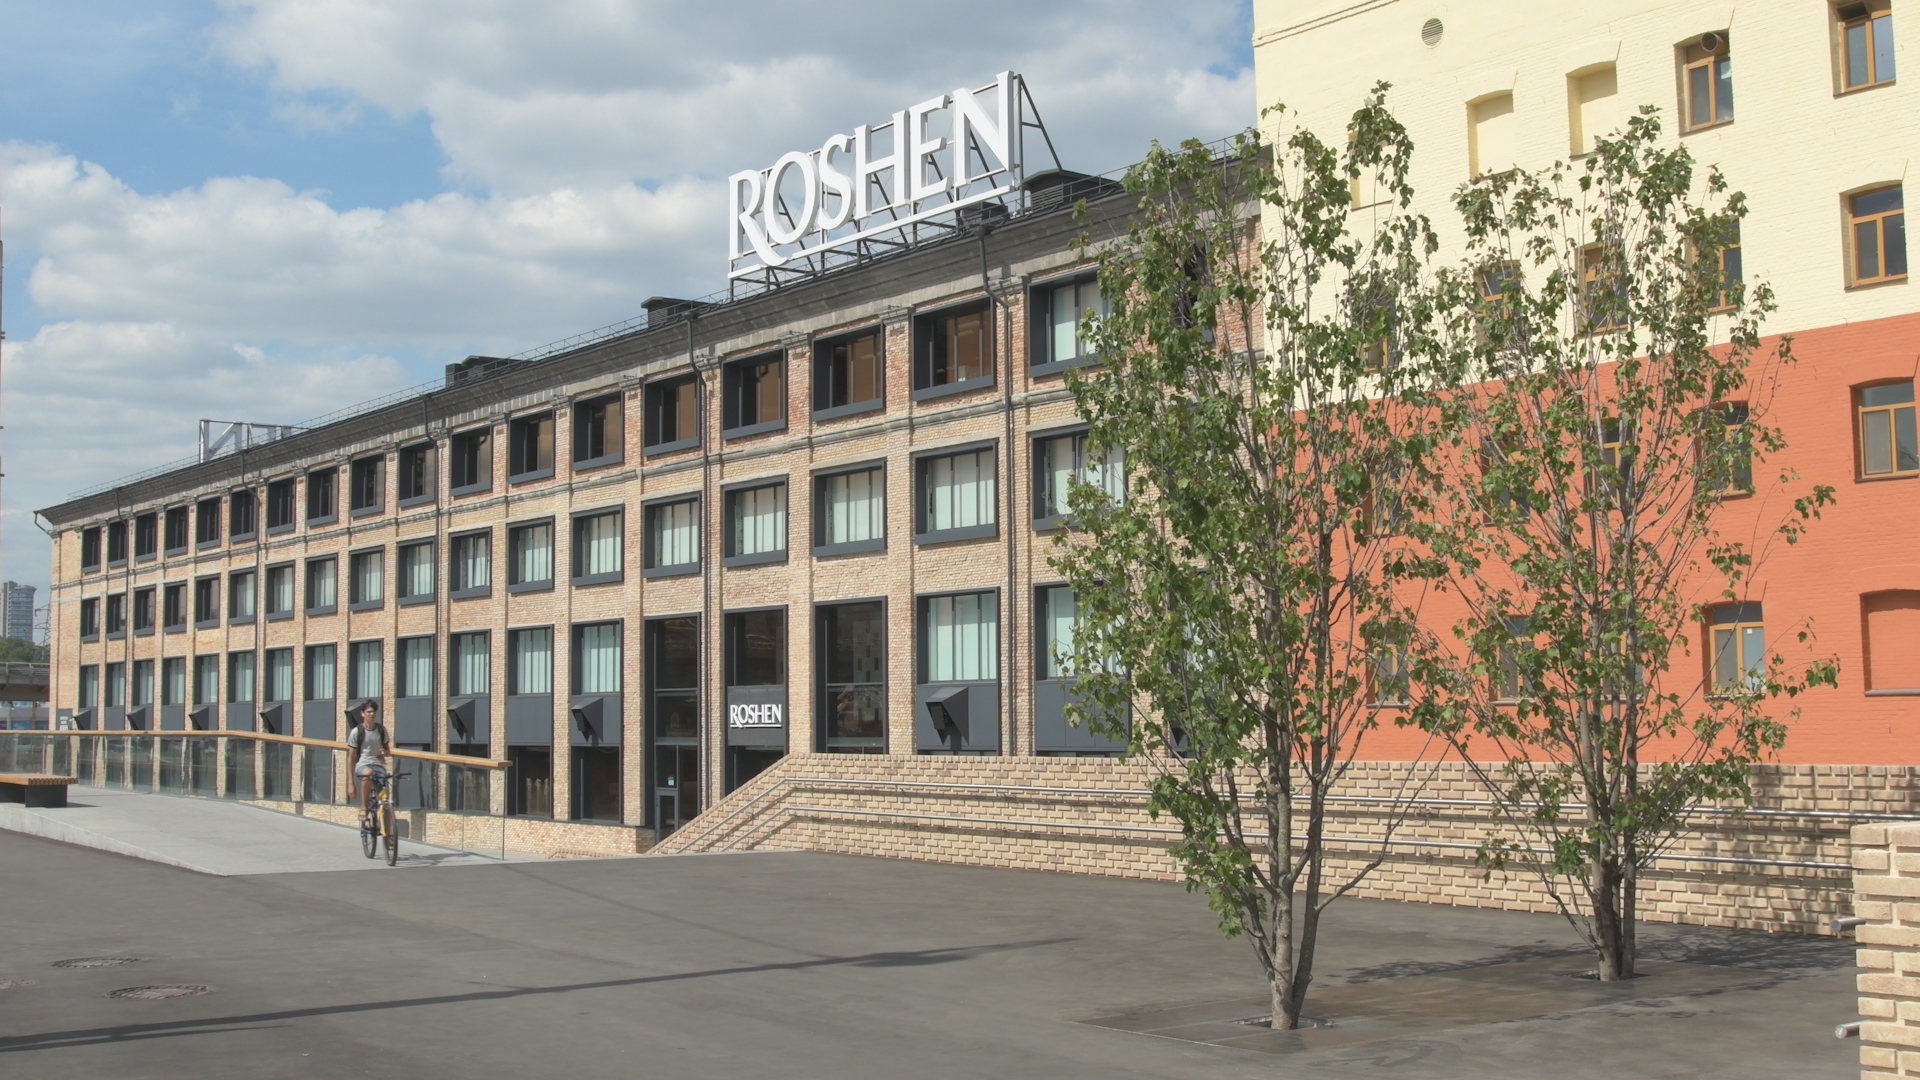 Pedestrian area near Roshen factory